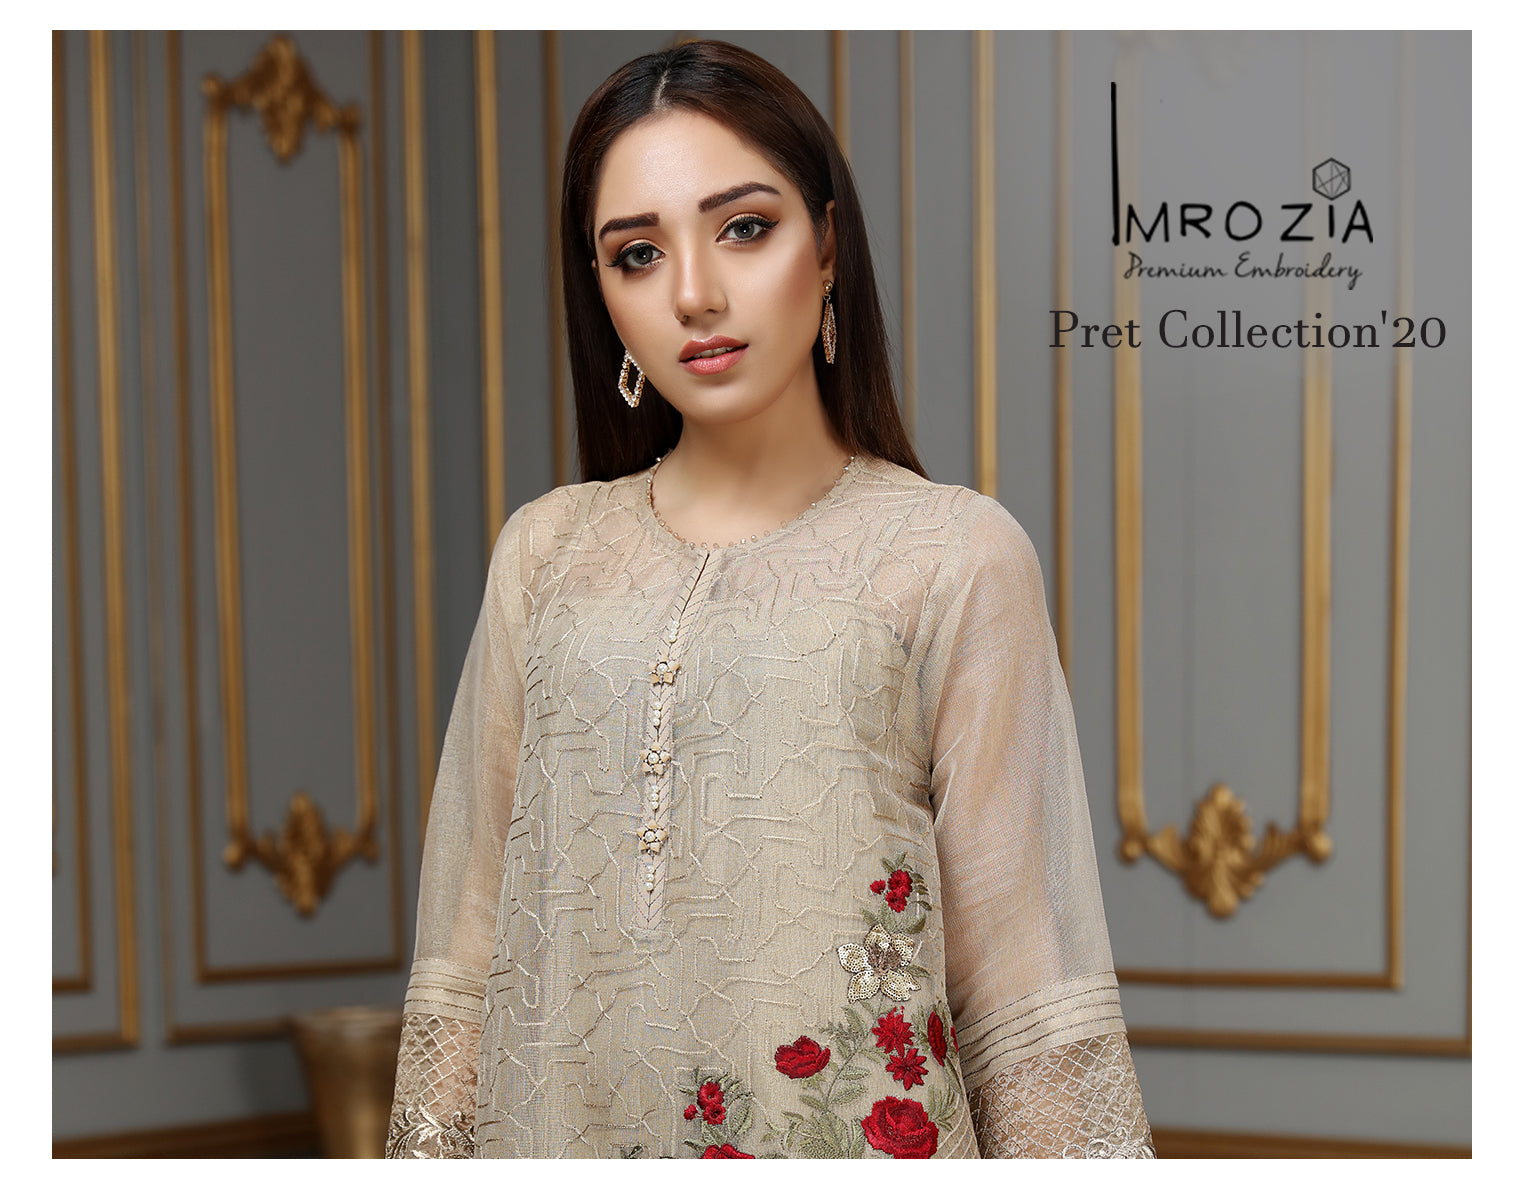 IMROZIA PRET COLLECTION